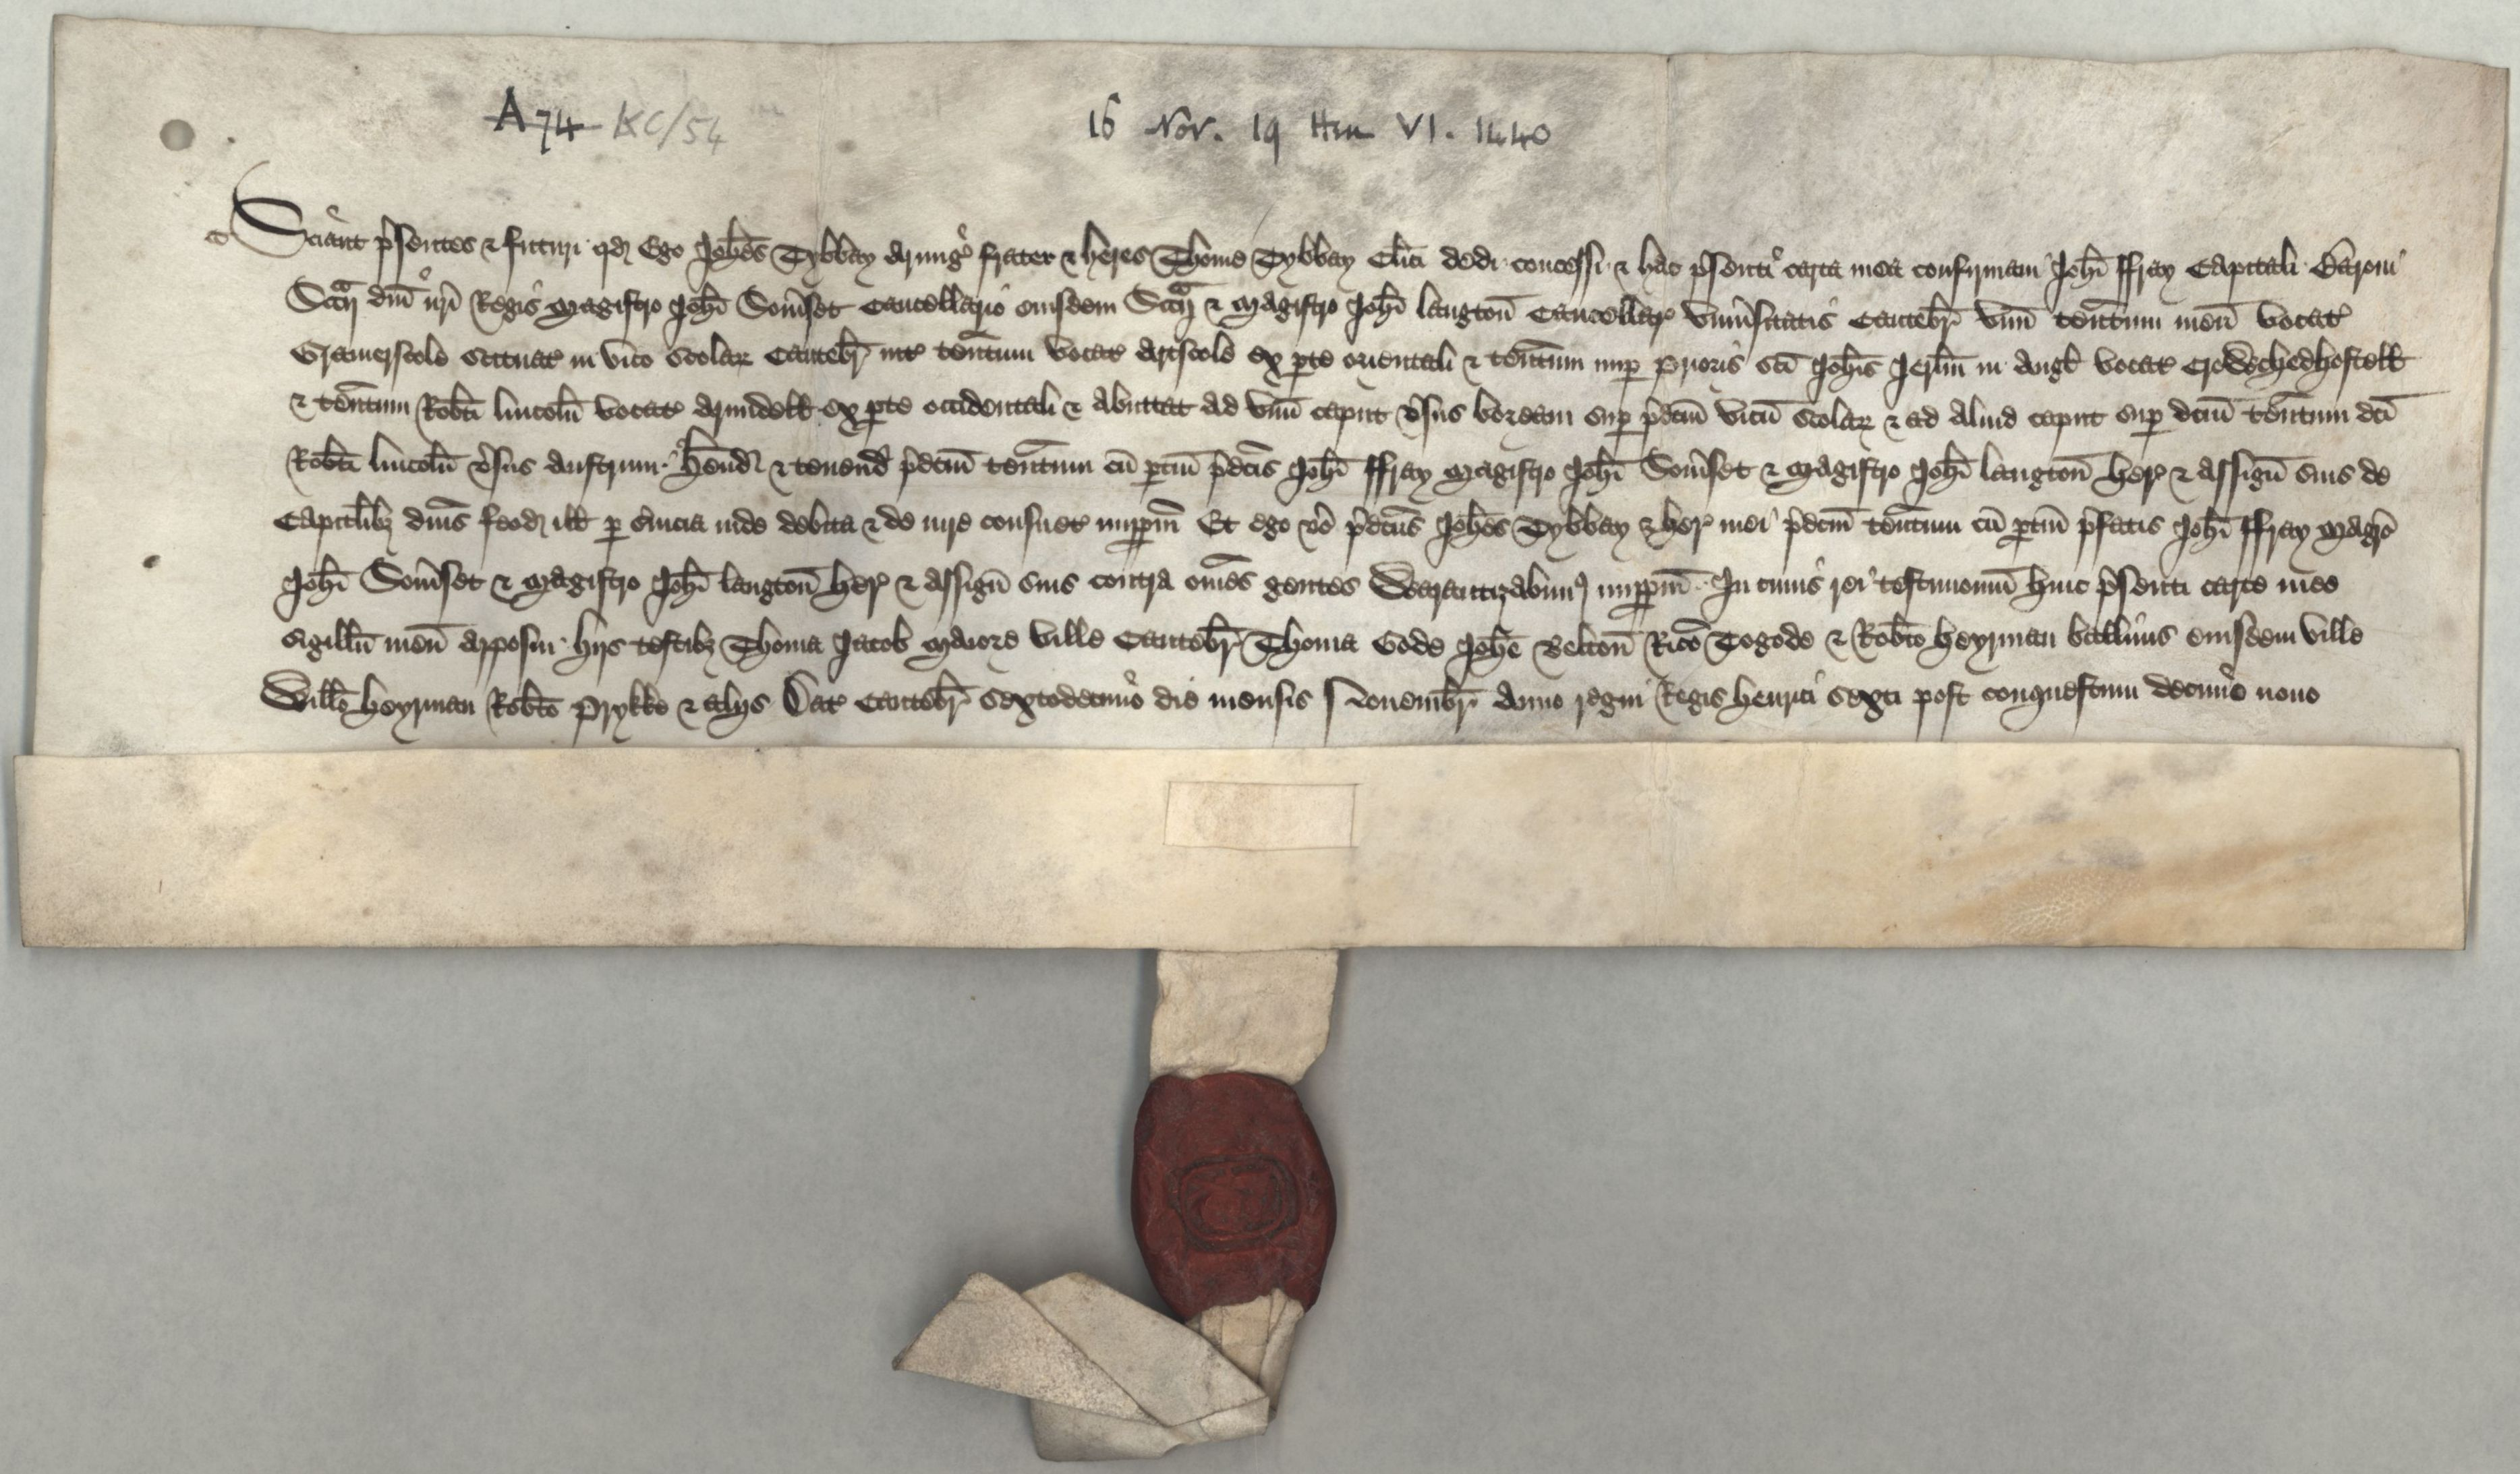 """Conveyance referring to """"Le Glomery Halle"""" as a tenement called """"Gramerscole"""", dated 16 November 1440. [CAM/7, formerly A.74]"""